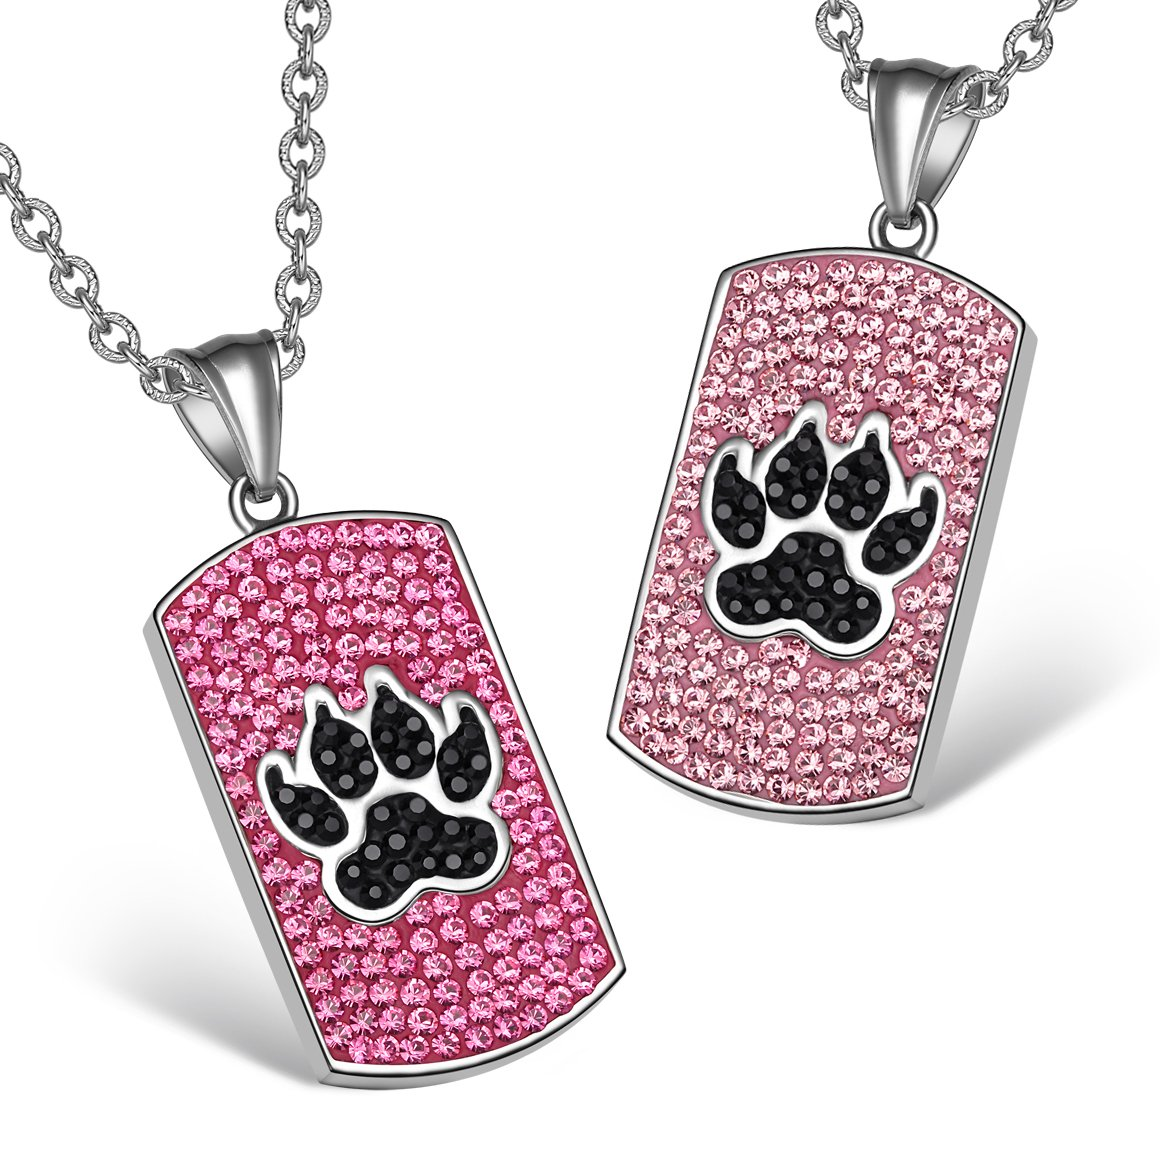 Wolf Paw Austrian Crystal Love Couples or Best Friends Tag Fuscia Pink Jet Black Charm Necklaces